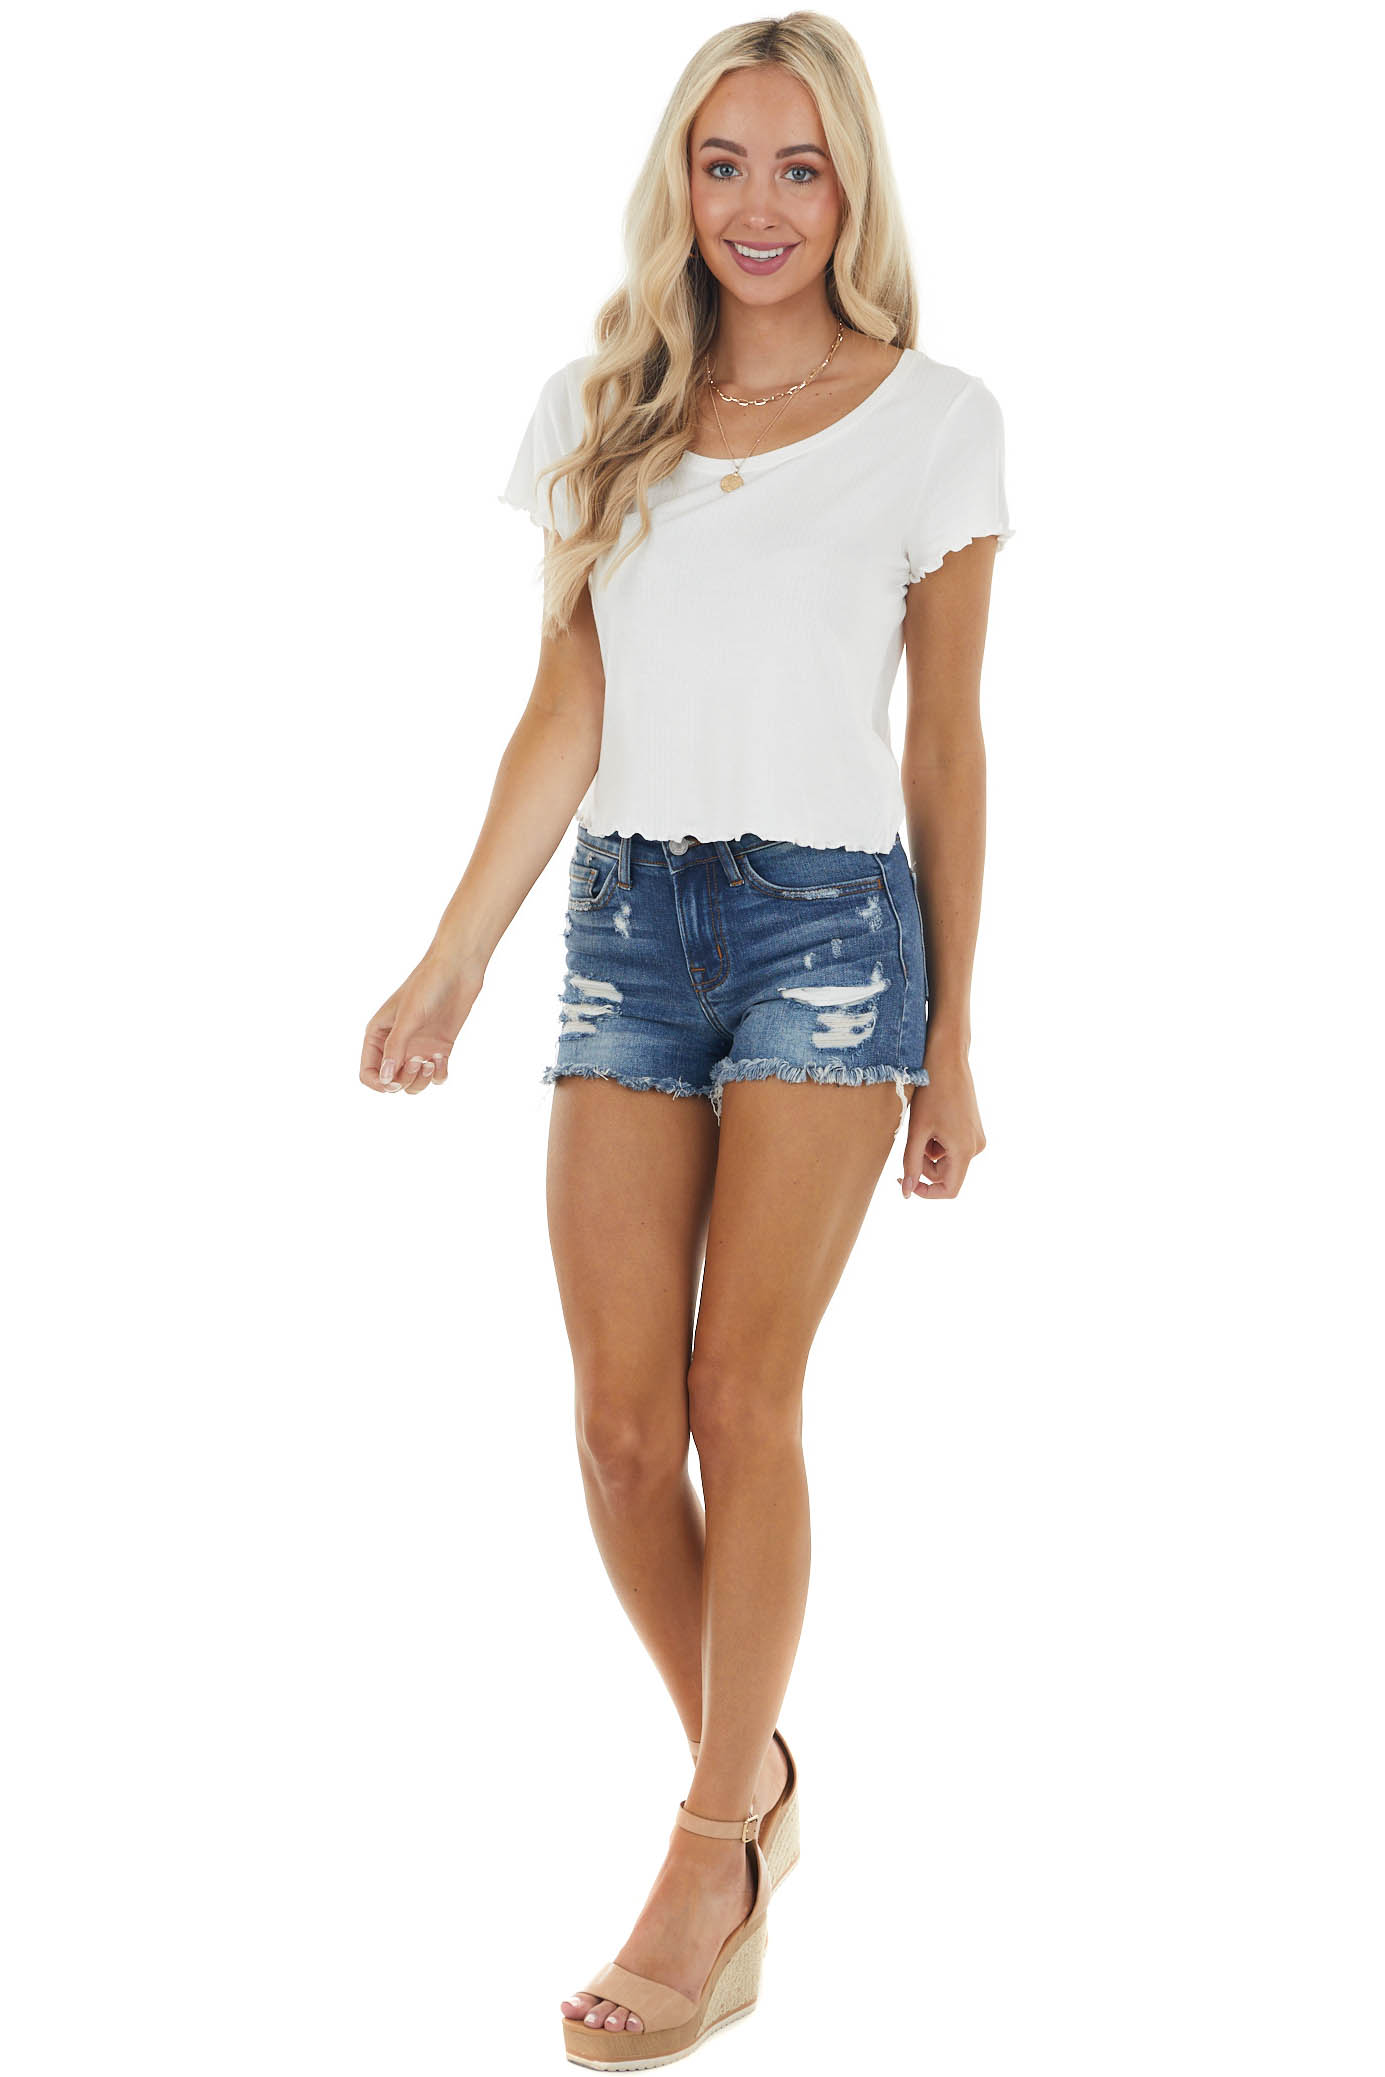 Off White Stretchy Ribbed Knit Top with Lettuce Hemline